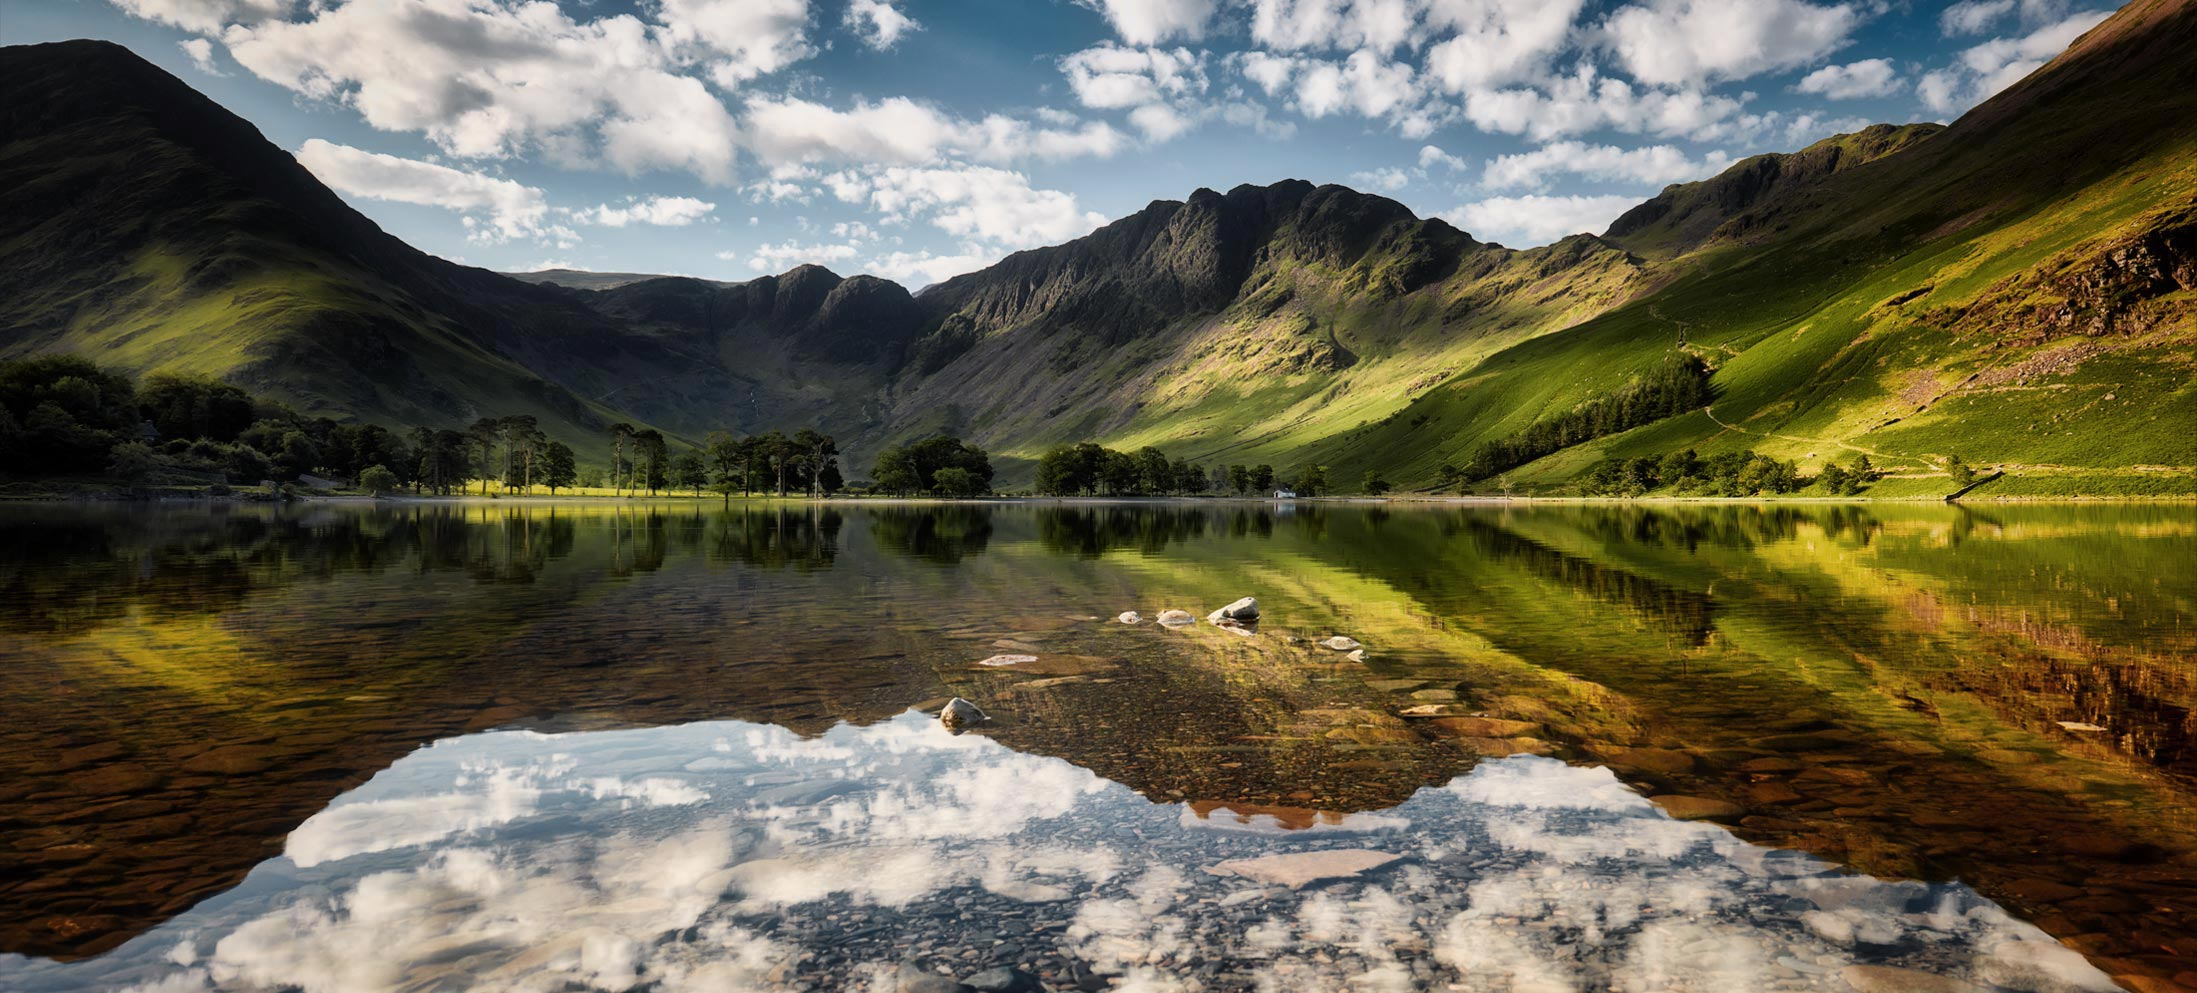 Fluffy White-Clouds Over Buttermere mug